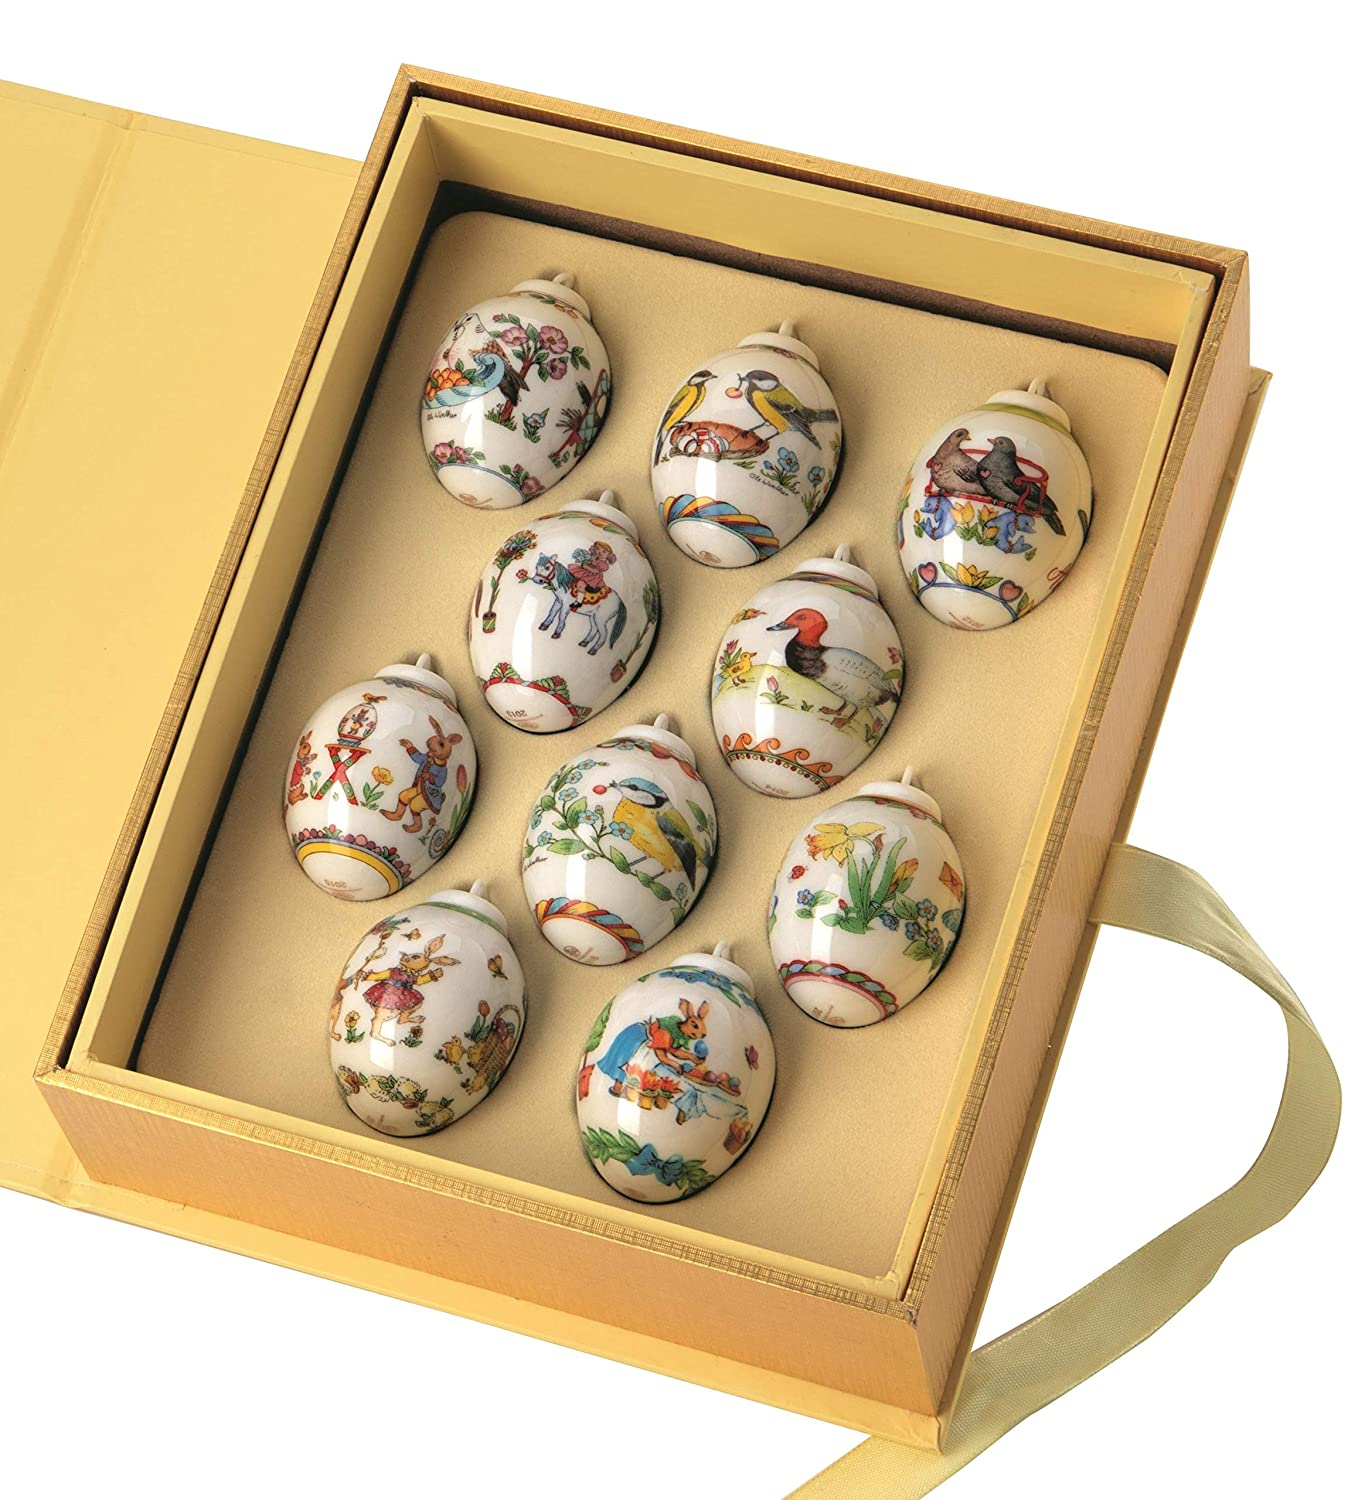 26a6f4657f4a Amazon.com  Hutschenreuther Collector s Themes 2019 Set of 10 Mini Eggs  Special Edition - Limited Edition 2000 Pieces World Edition  Kitchen    Dining